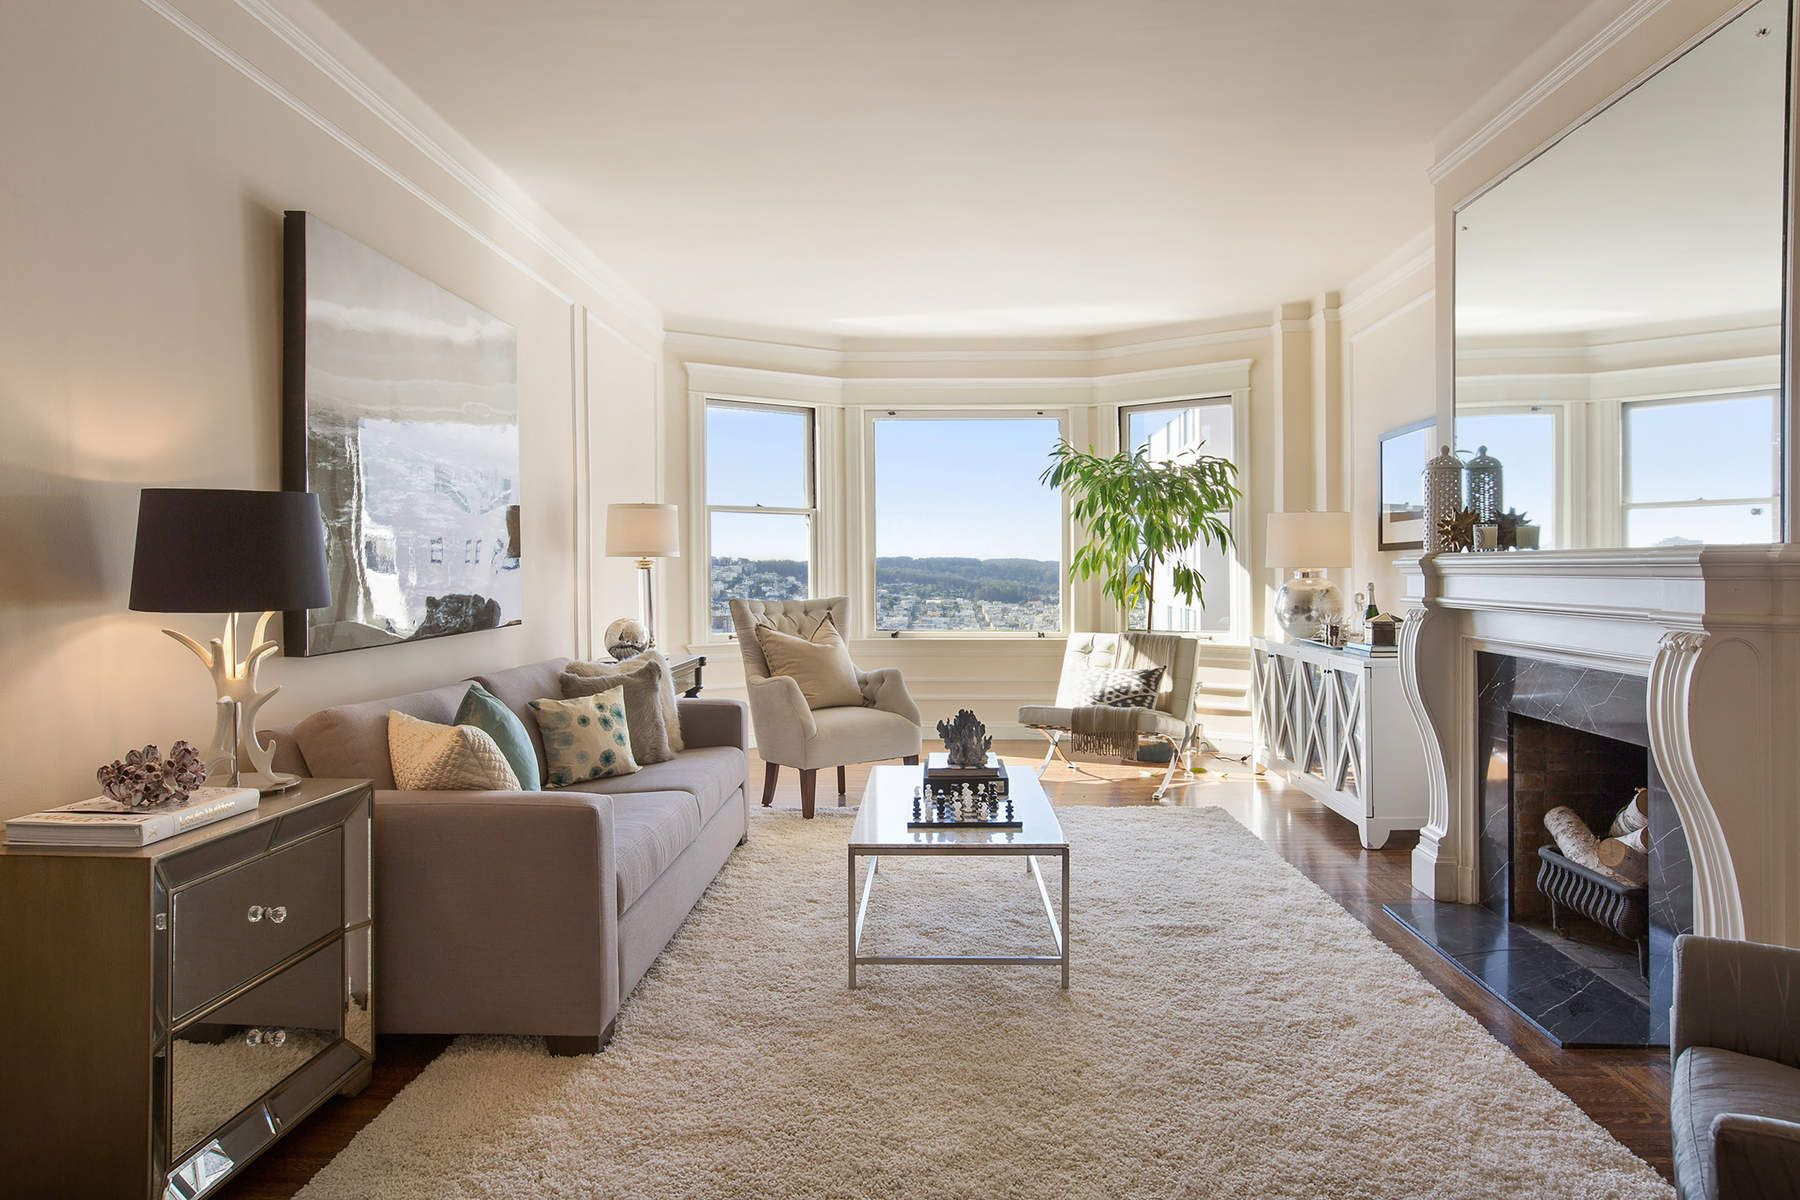 Co-op for Sale at Rare Opportunity at the Capo di Monte! 2111 Hyde St # 306, San Francisco, California, 94109 United States